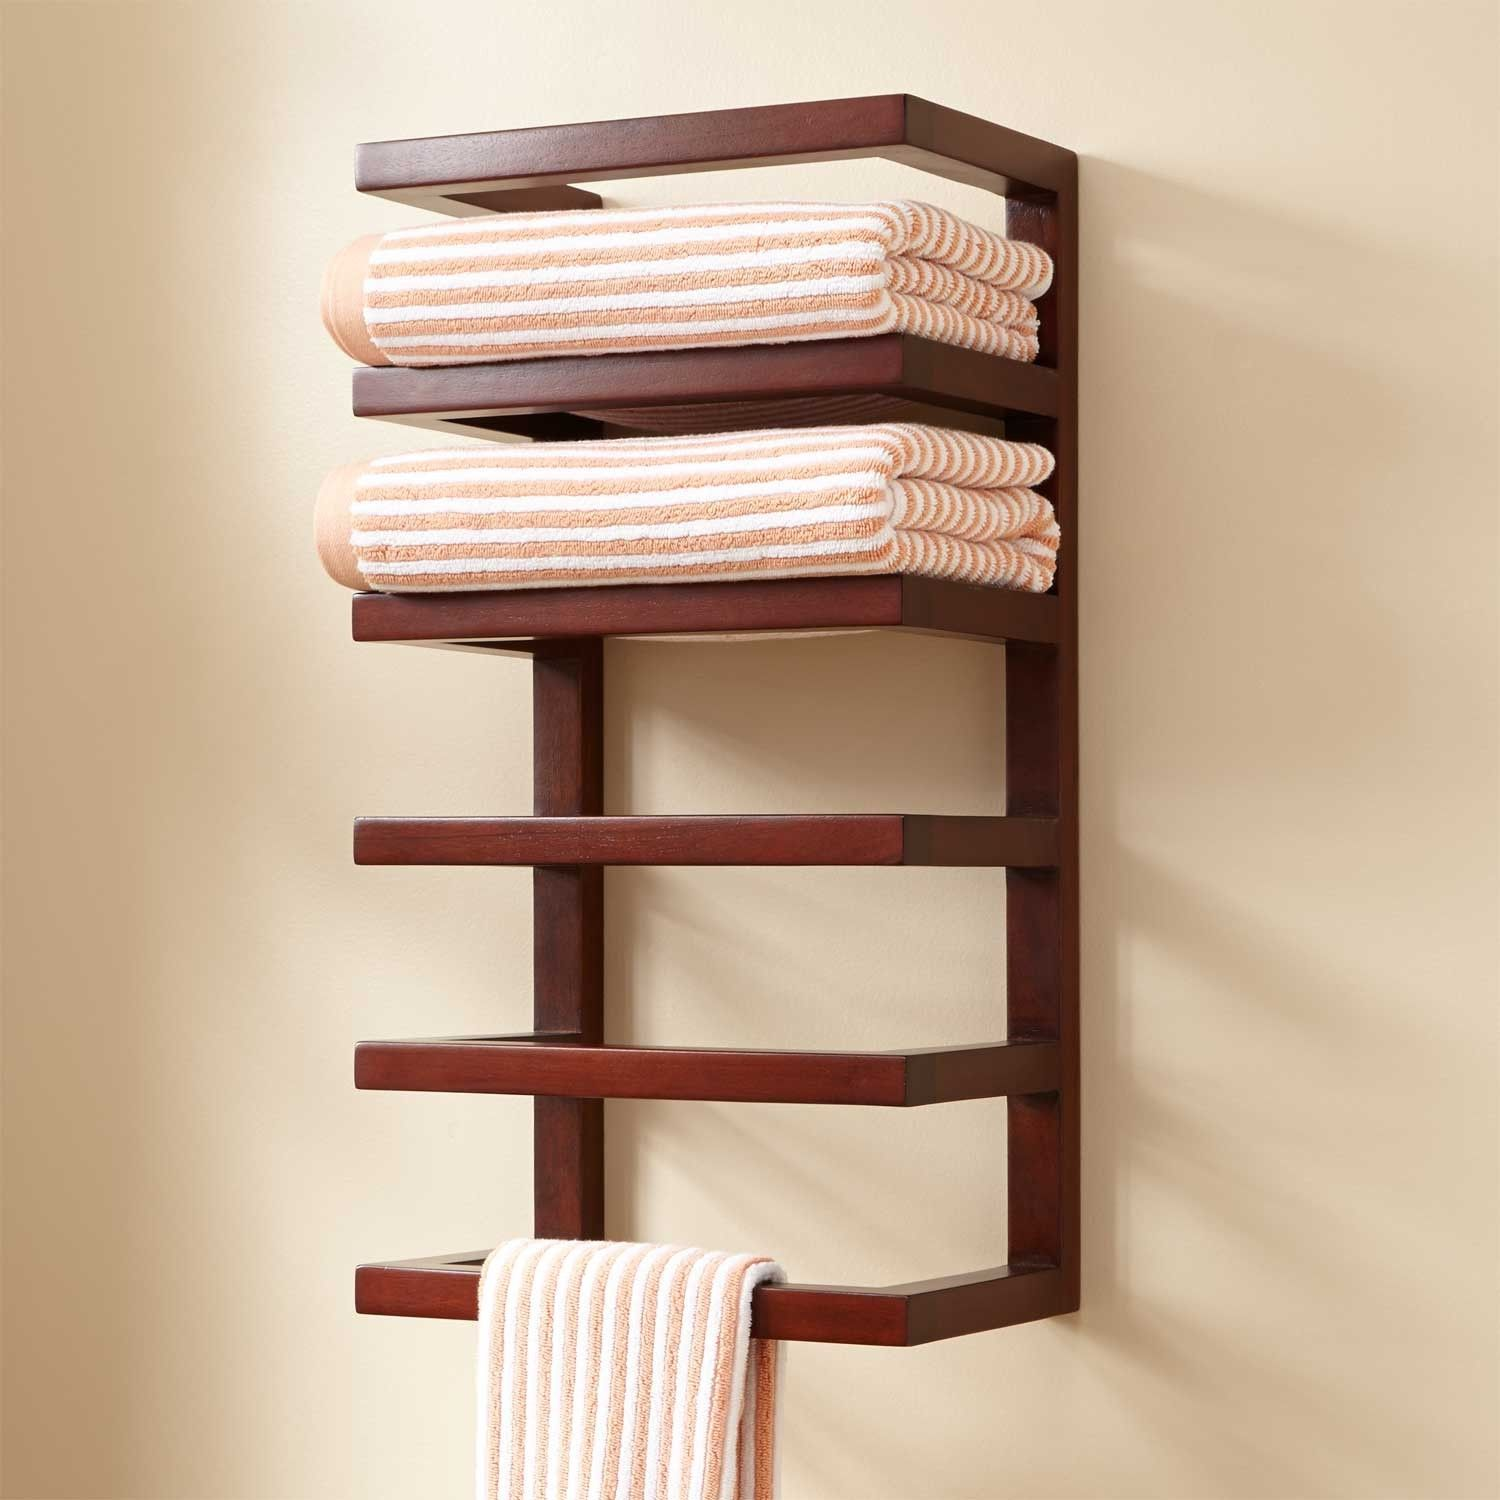 Wall Decor Towel Rack : Mahogany hanging towel rack holders bathroom